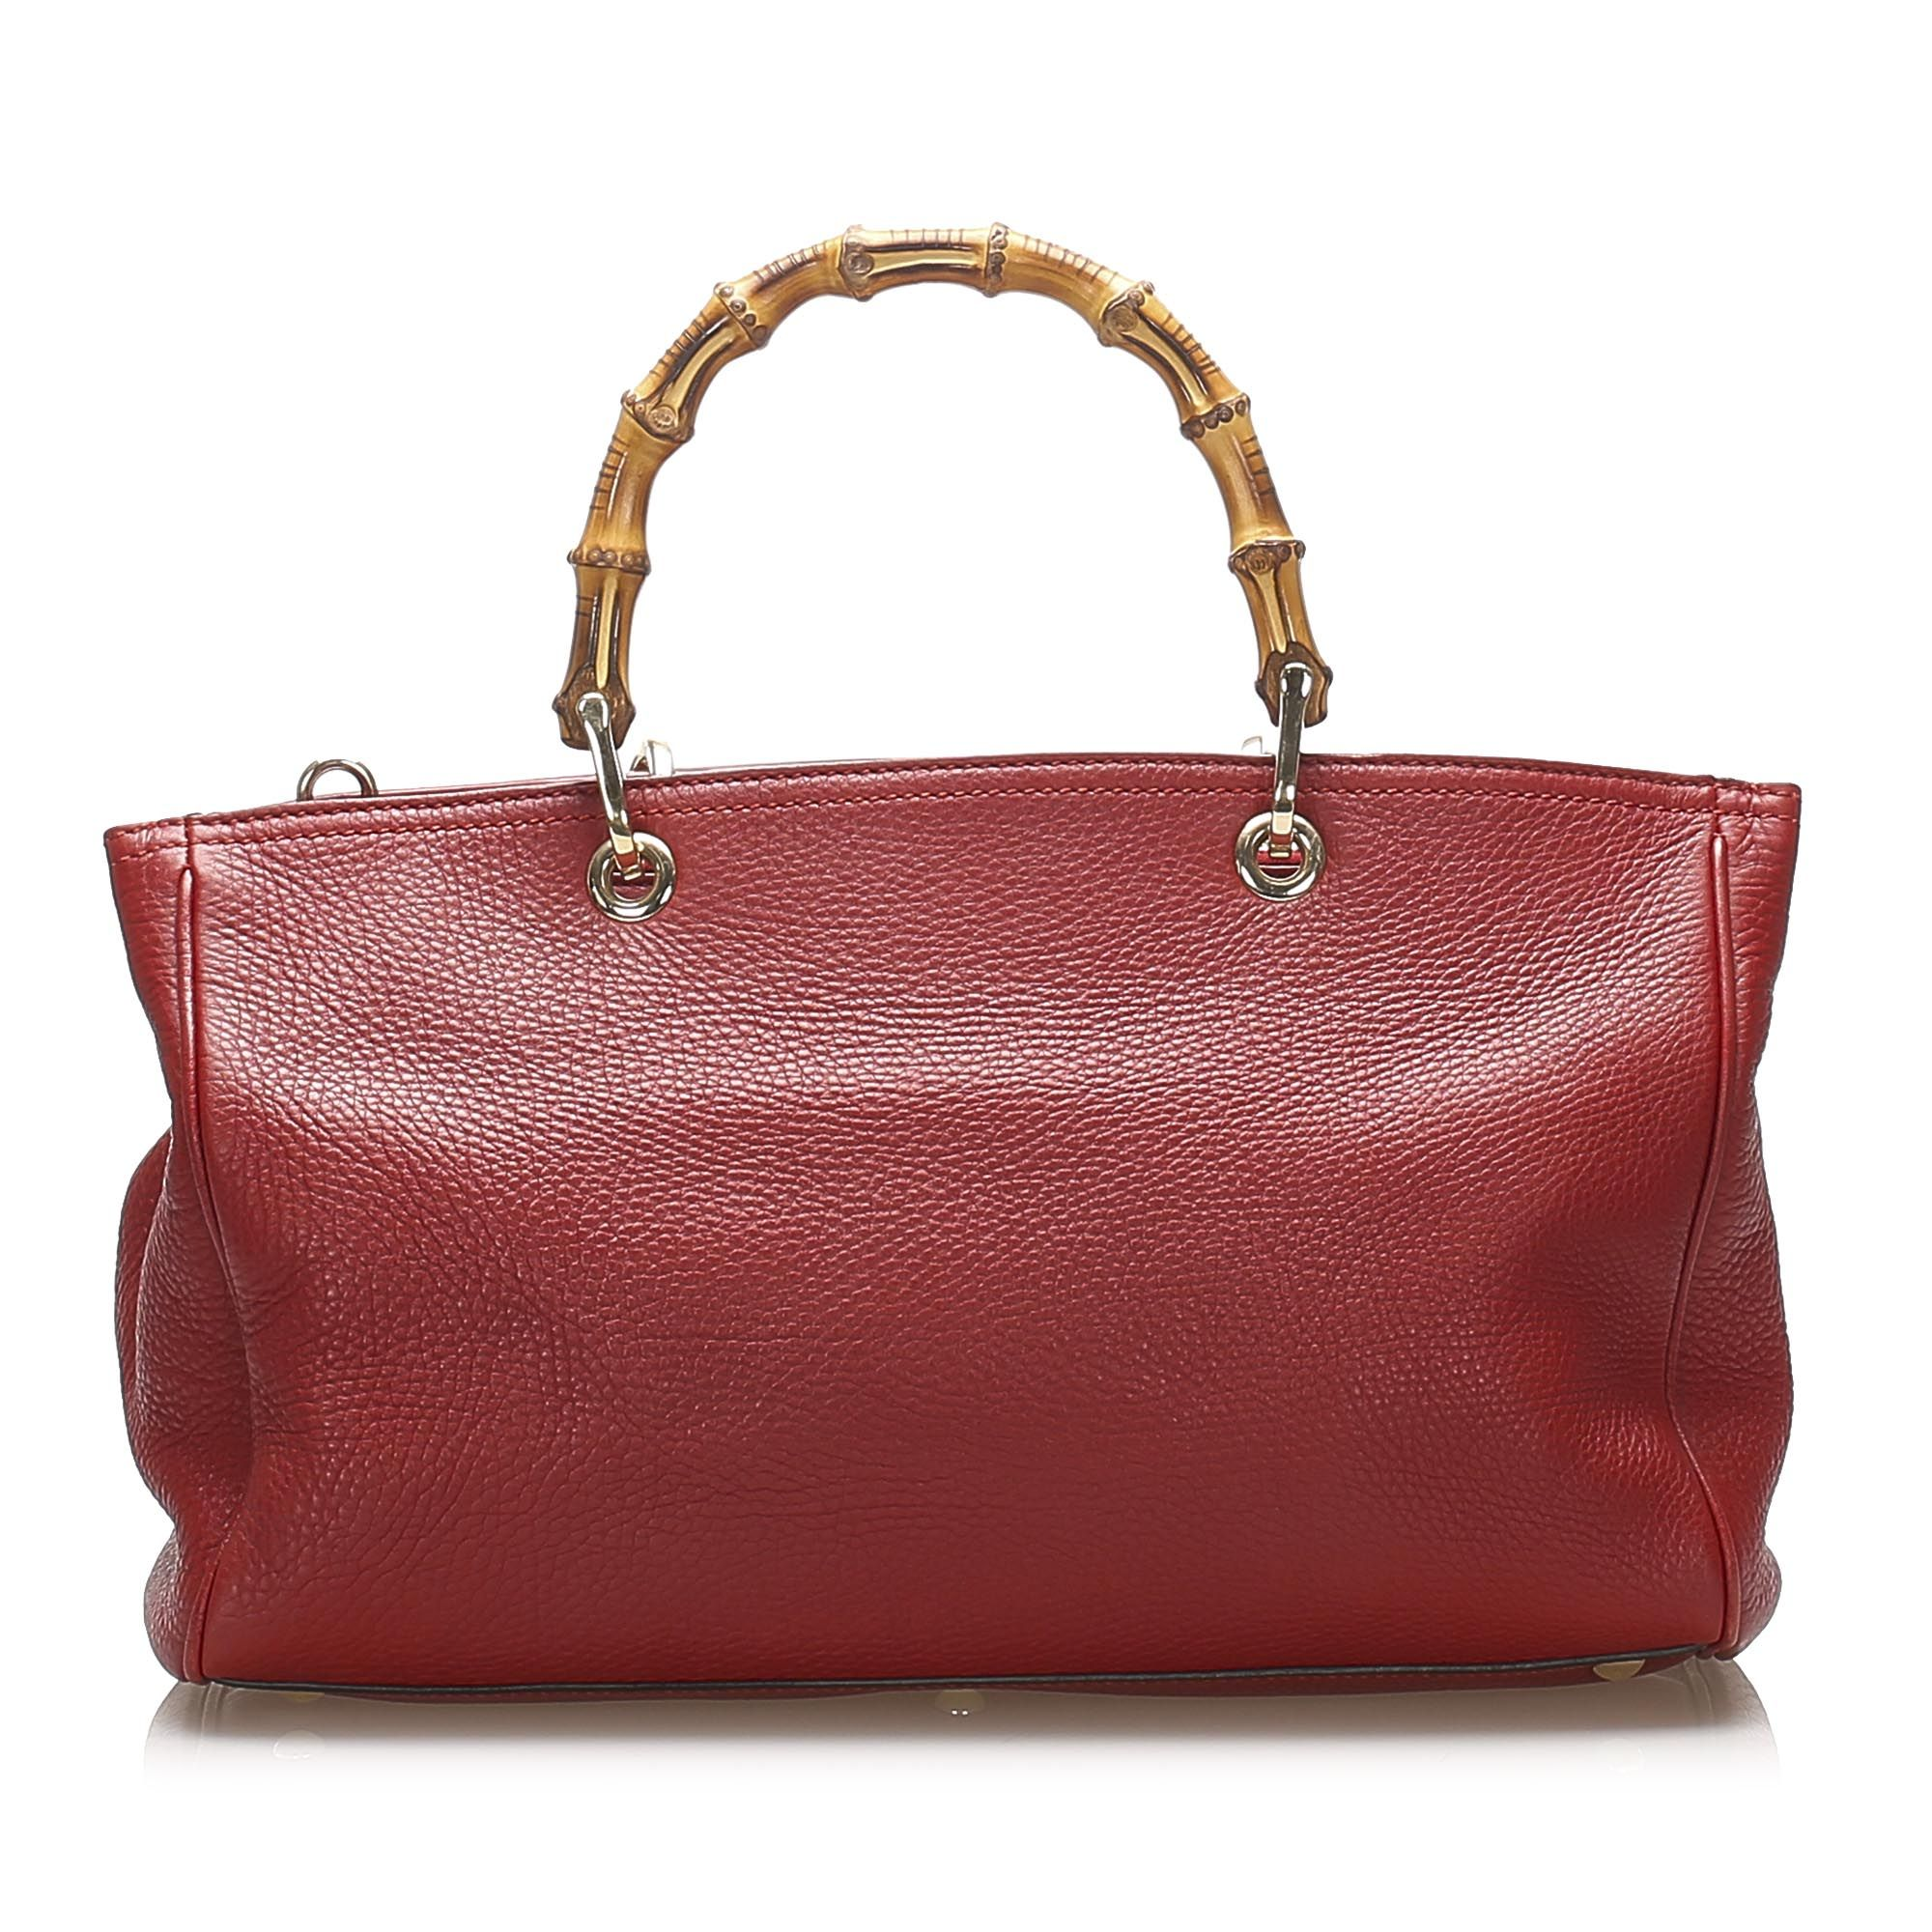 Vintage Gucci Bamboo Shopper Leather Satchel Red